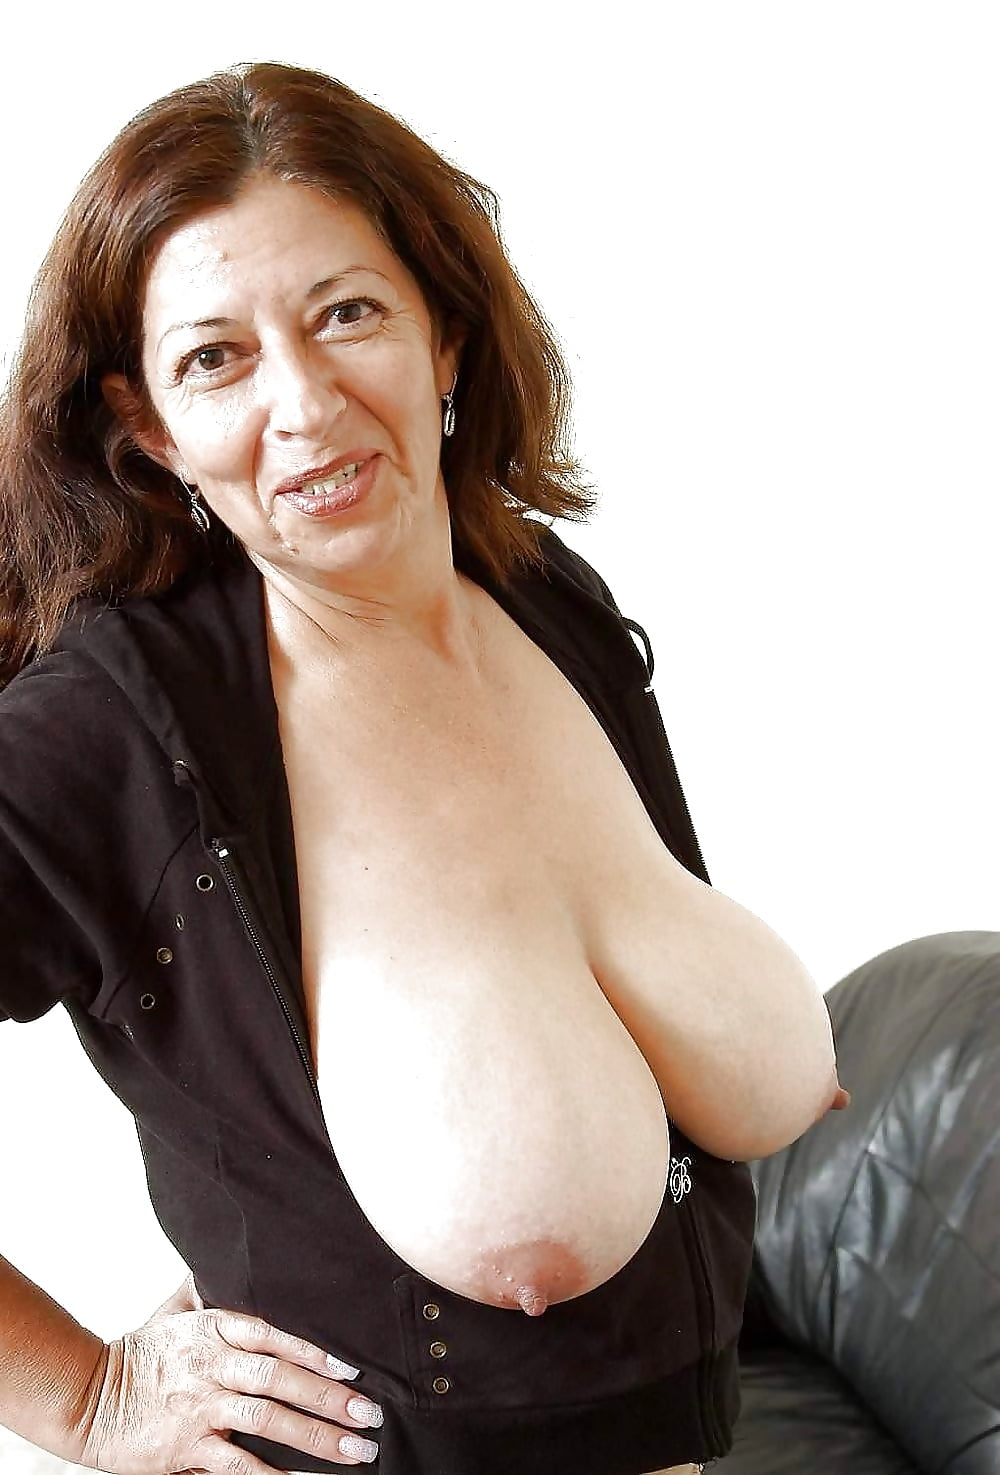 Mature Women With Huge Saggy Tits